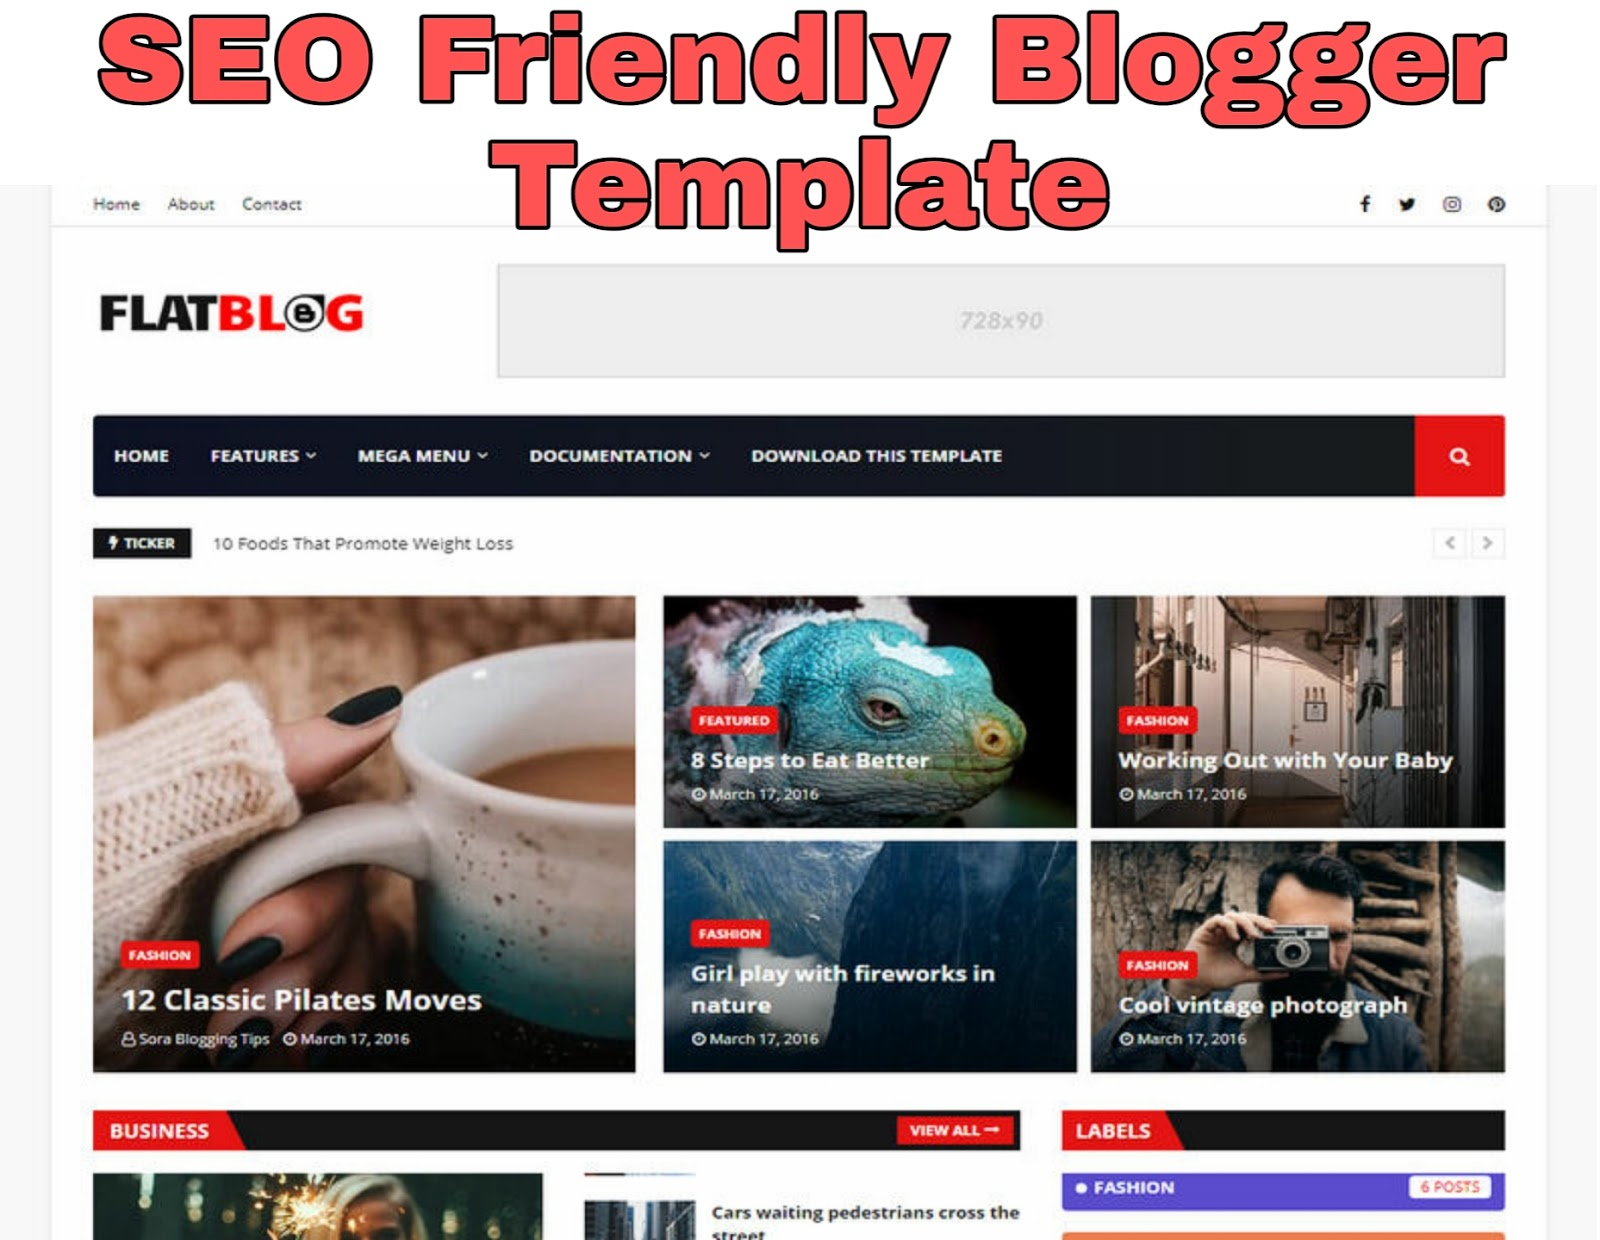 SEO Friendly Blogger Template 2020 – Fast Load, Ads Ready